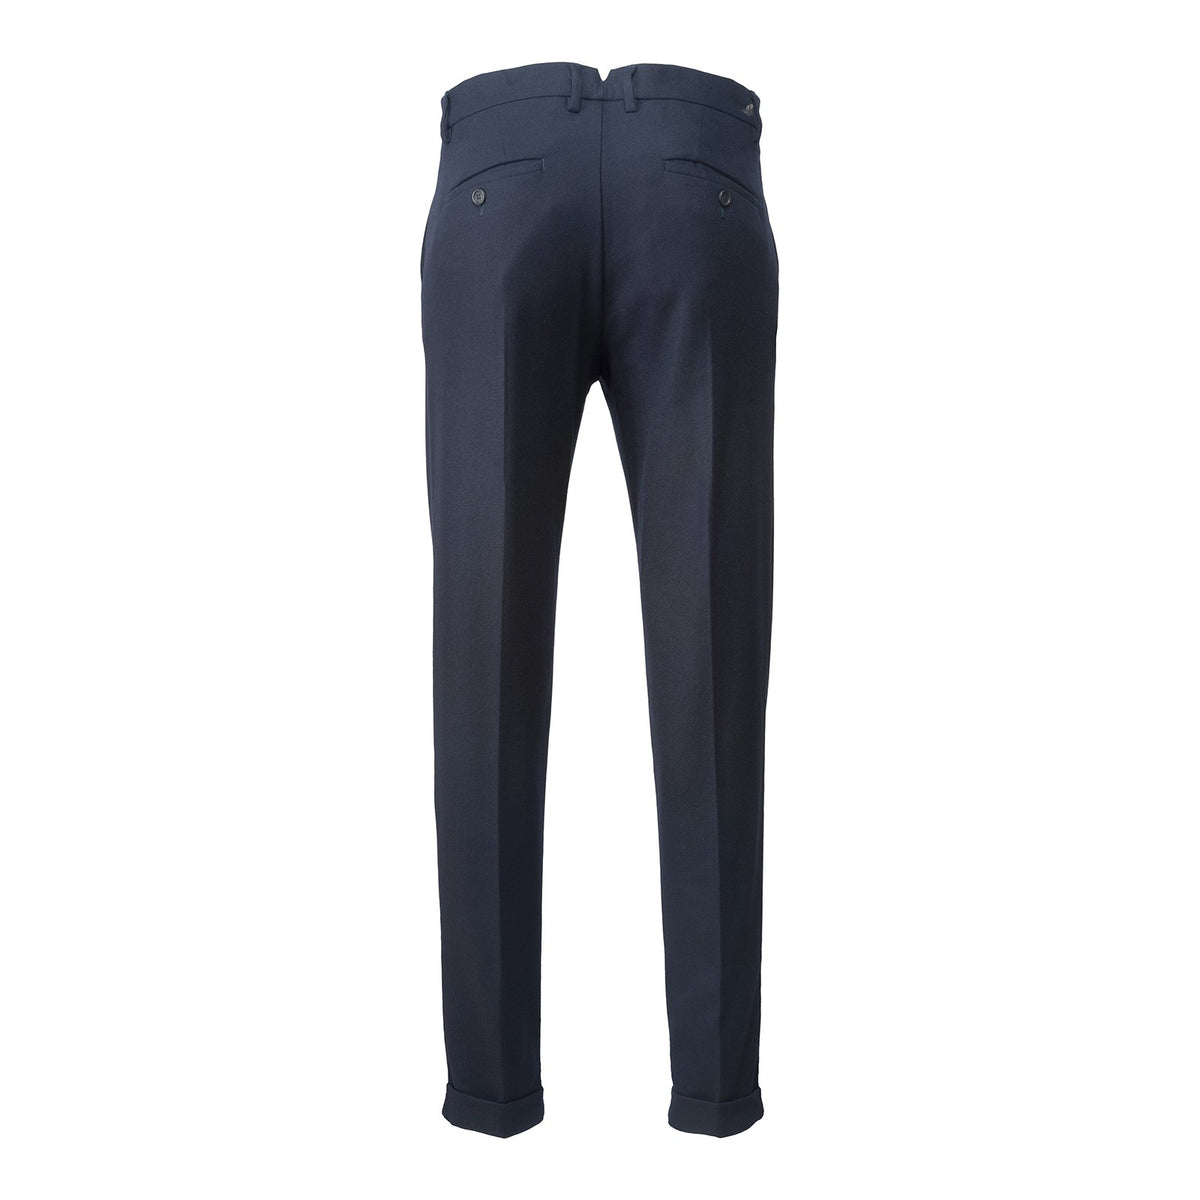 Felted Wool Tailored Chinos